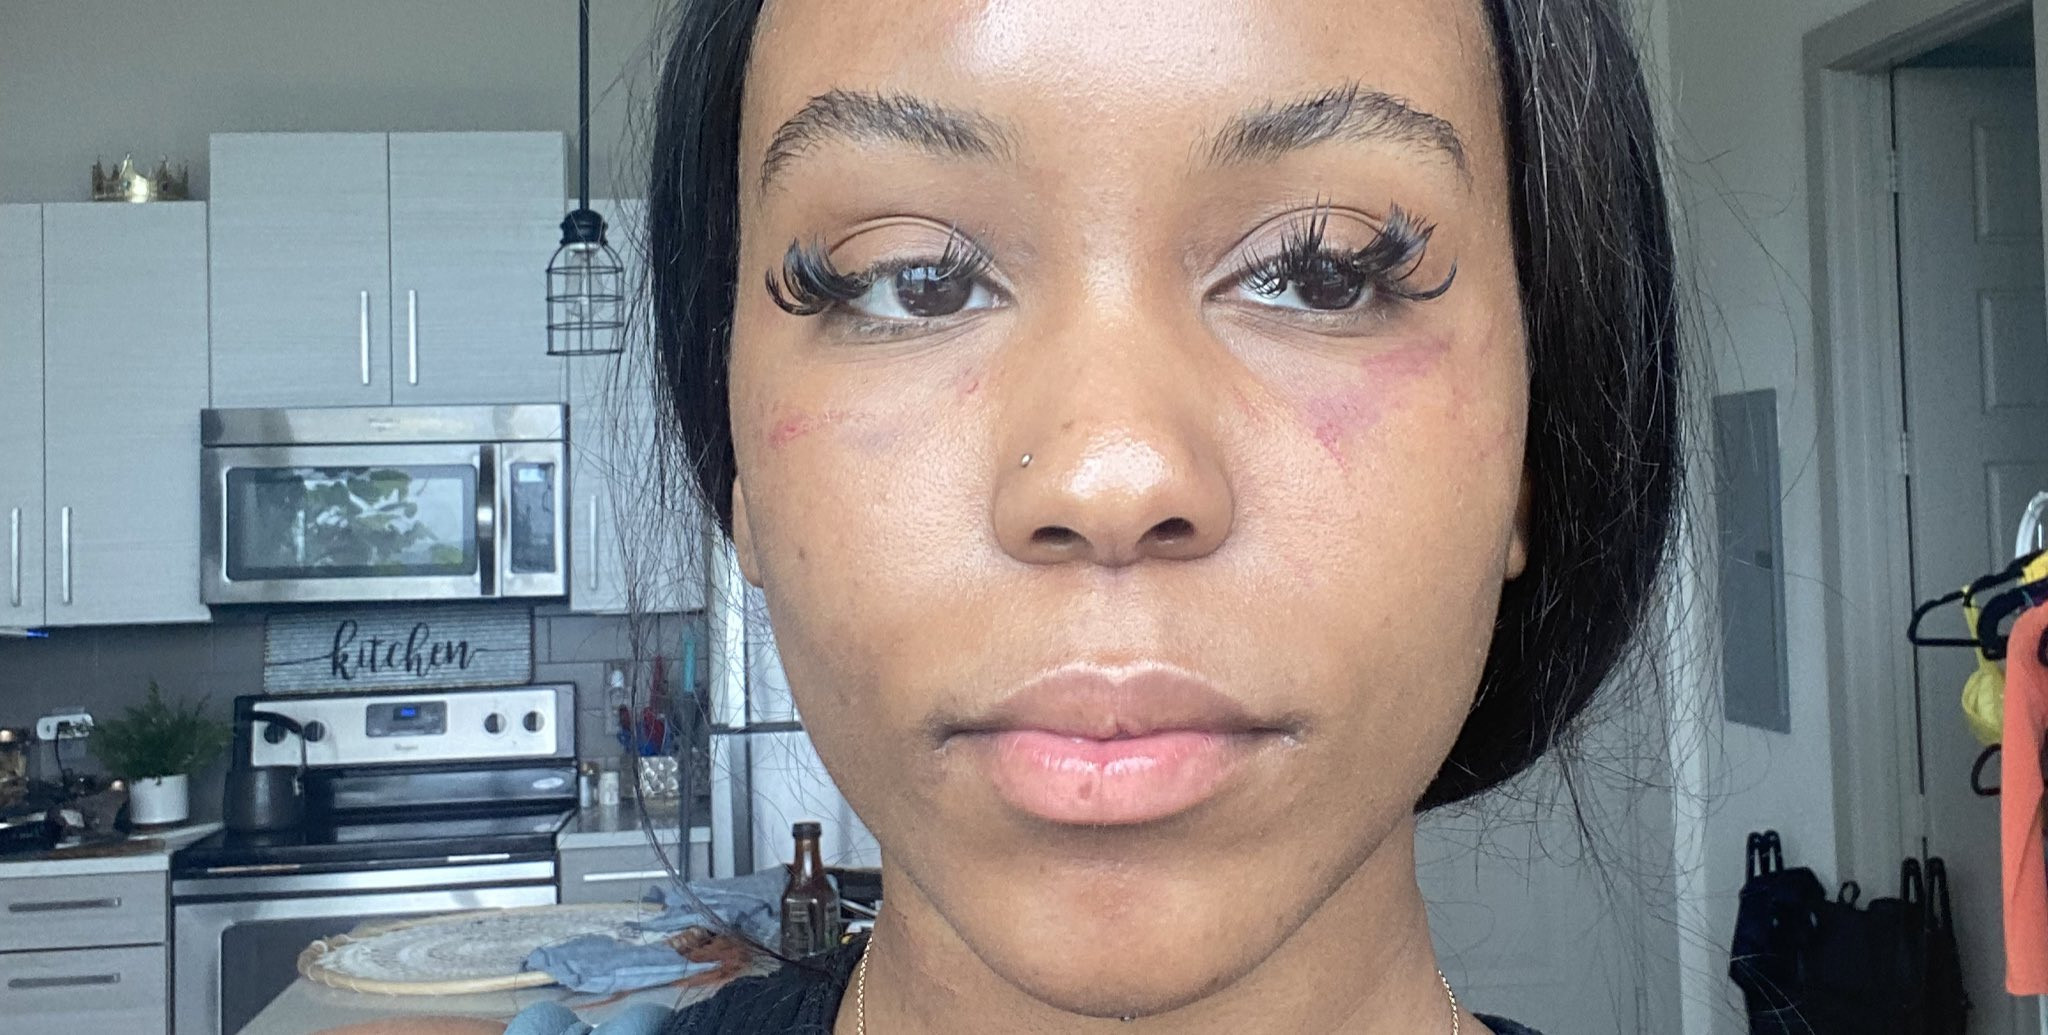 Lady shows off her bruised face and neck after she was physically assaulted by her lesbian partner